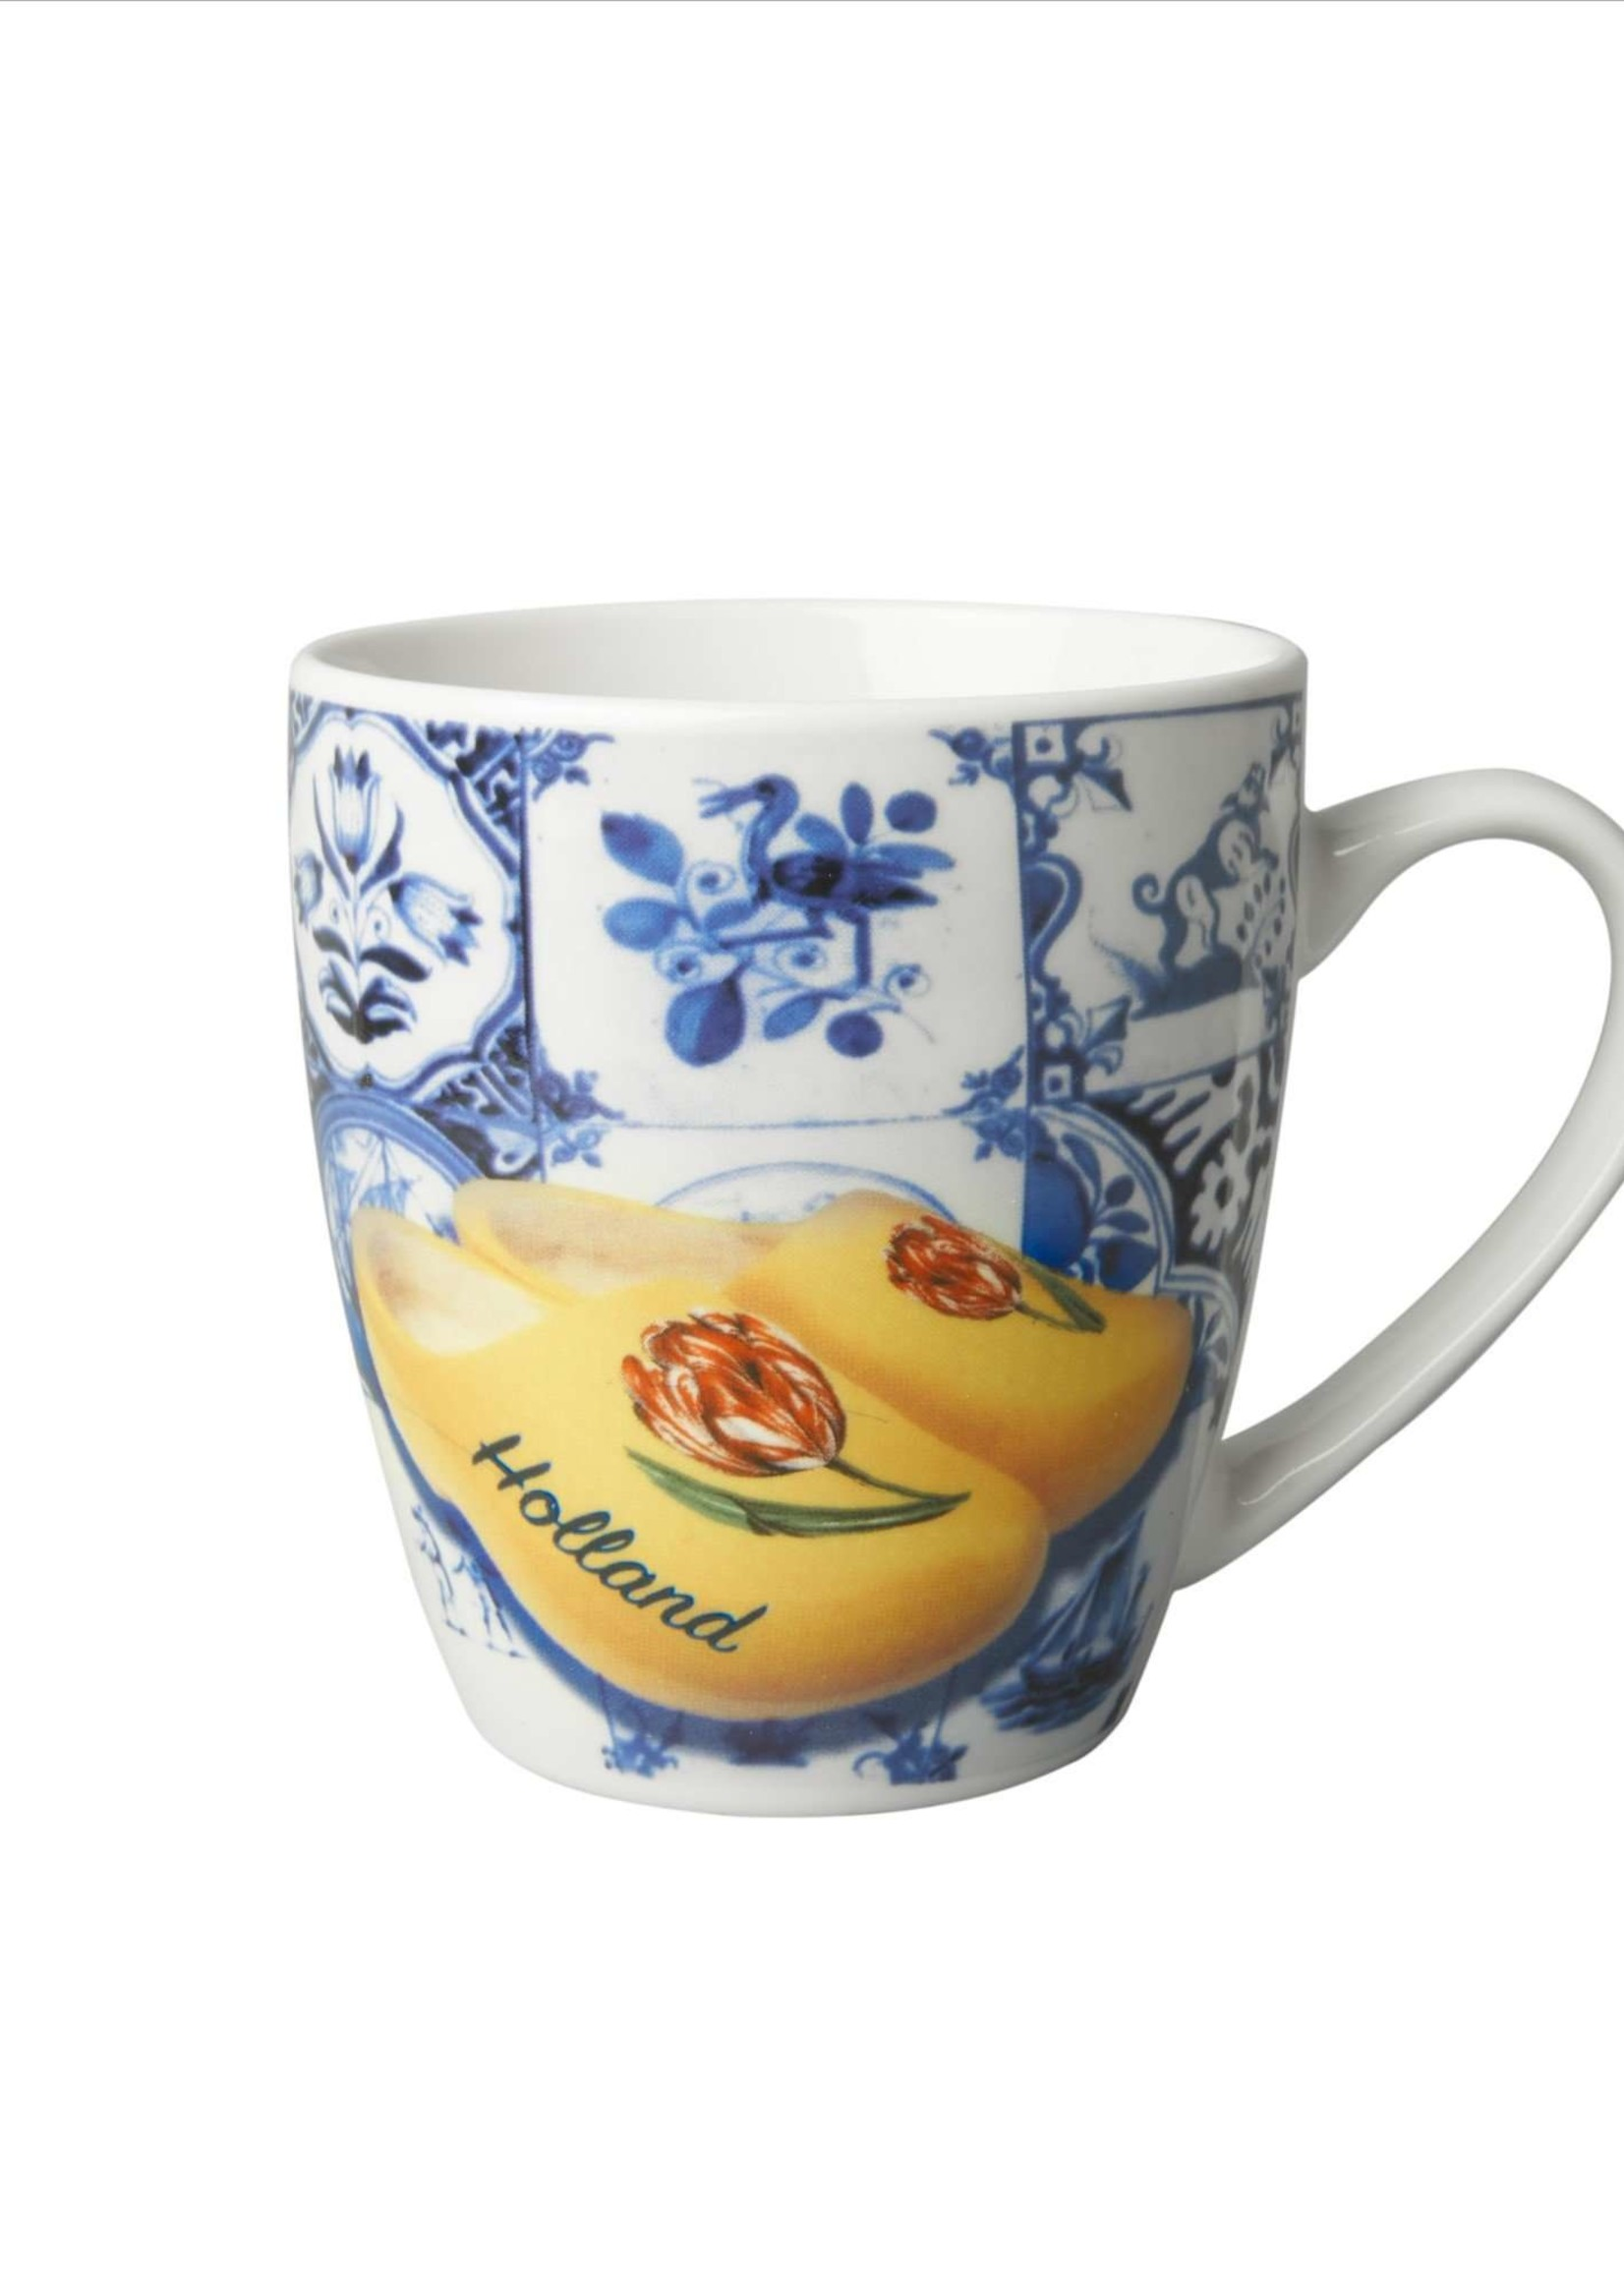 Delft Blue Mug with Tiles and Wooden Shoes, Small